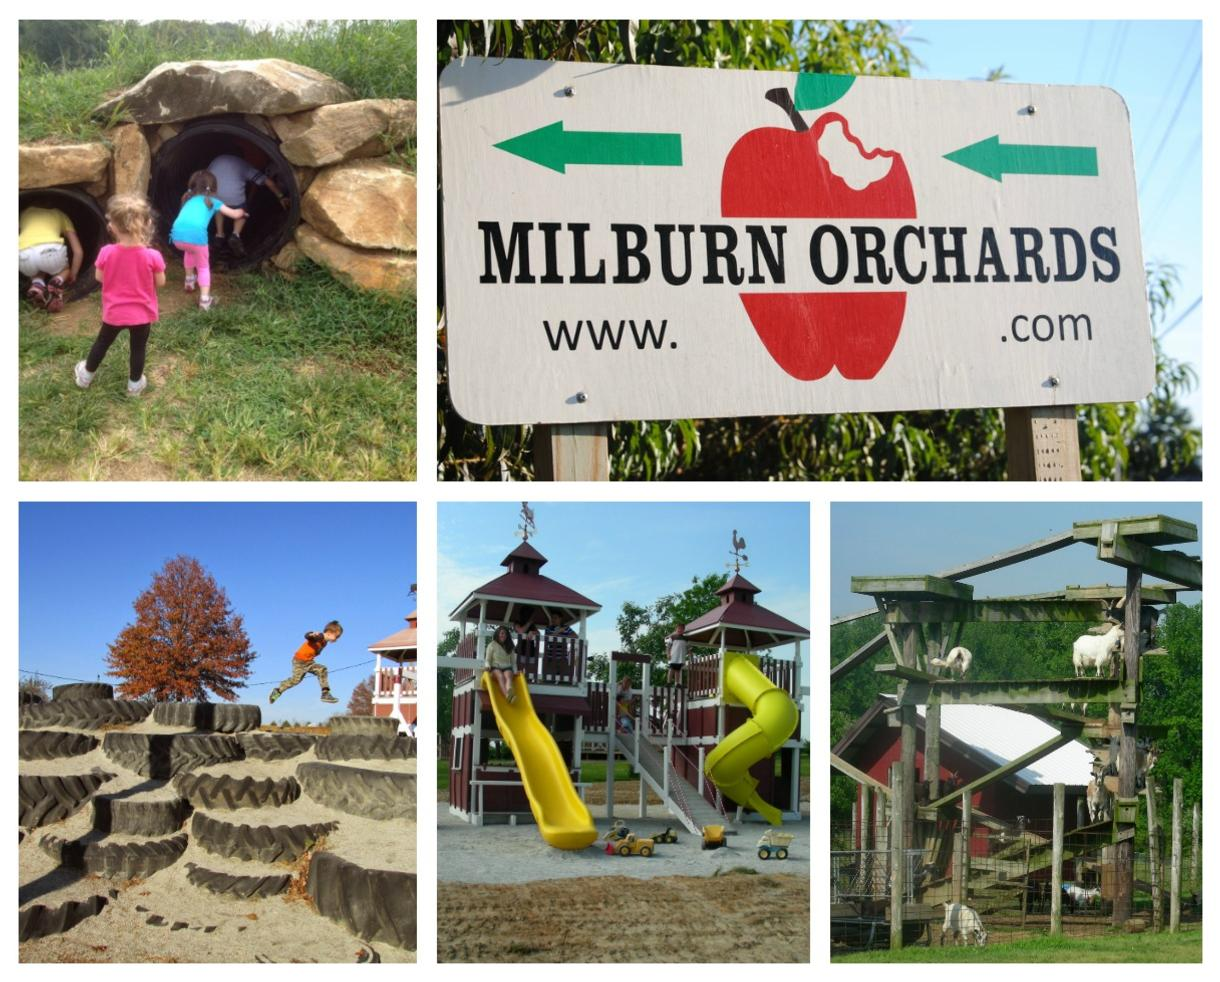 Save $6 on Admission at Milburn Orchards in Elkton!